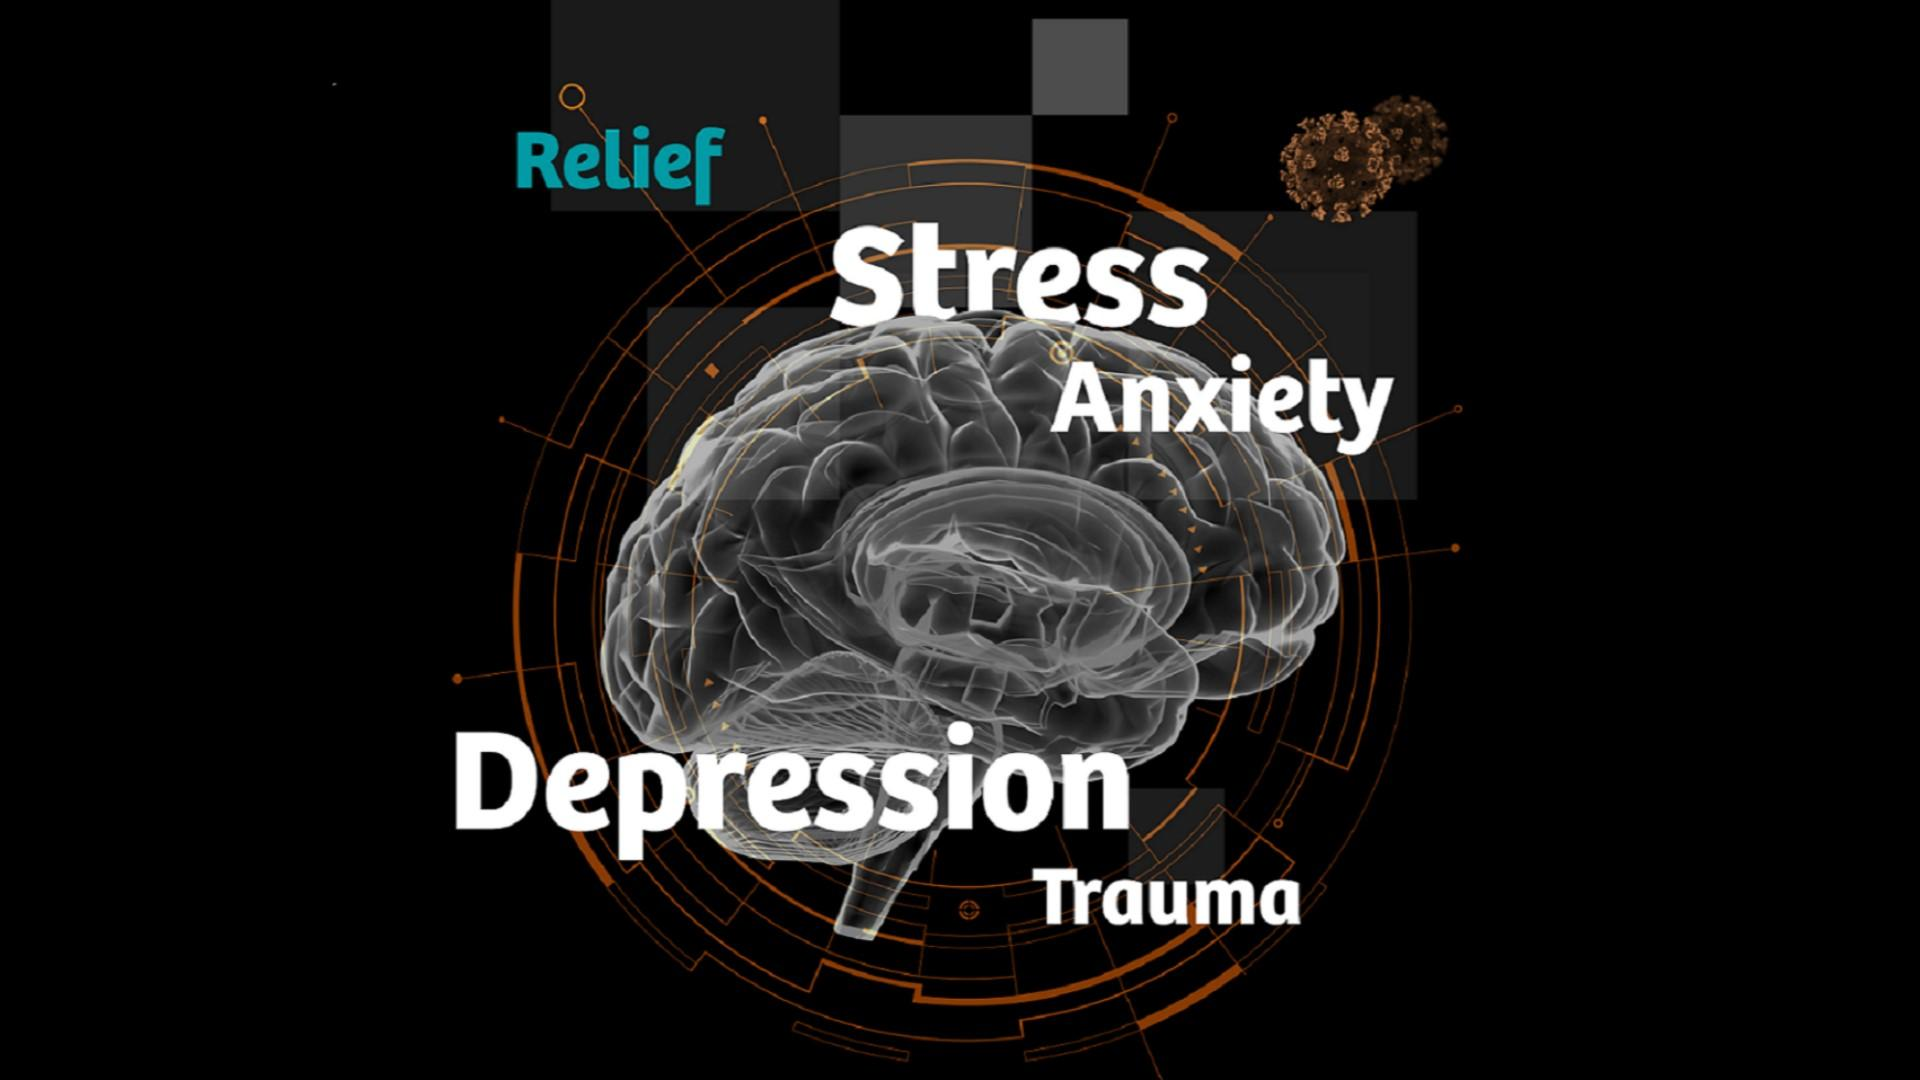 Cover picture on how to manage caregiver stress and trauma in the COVID-19 era.